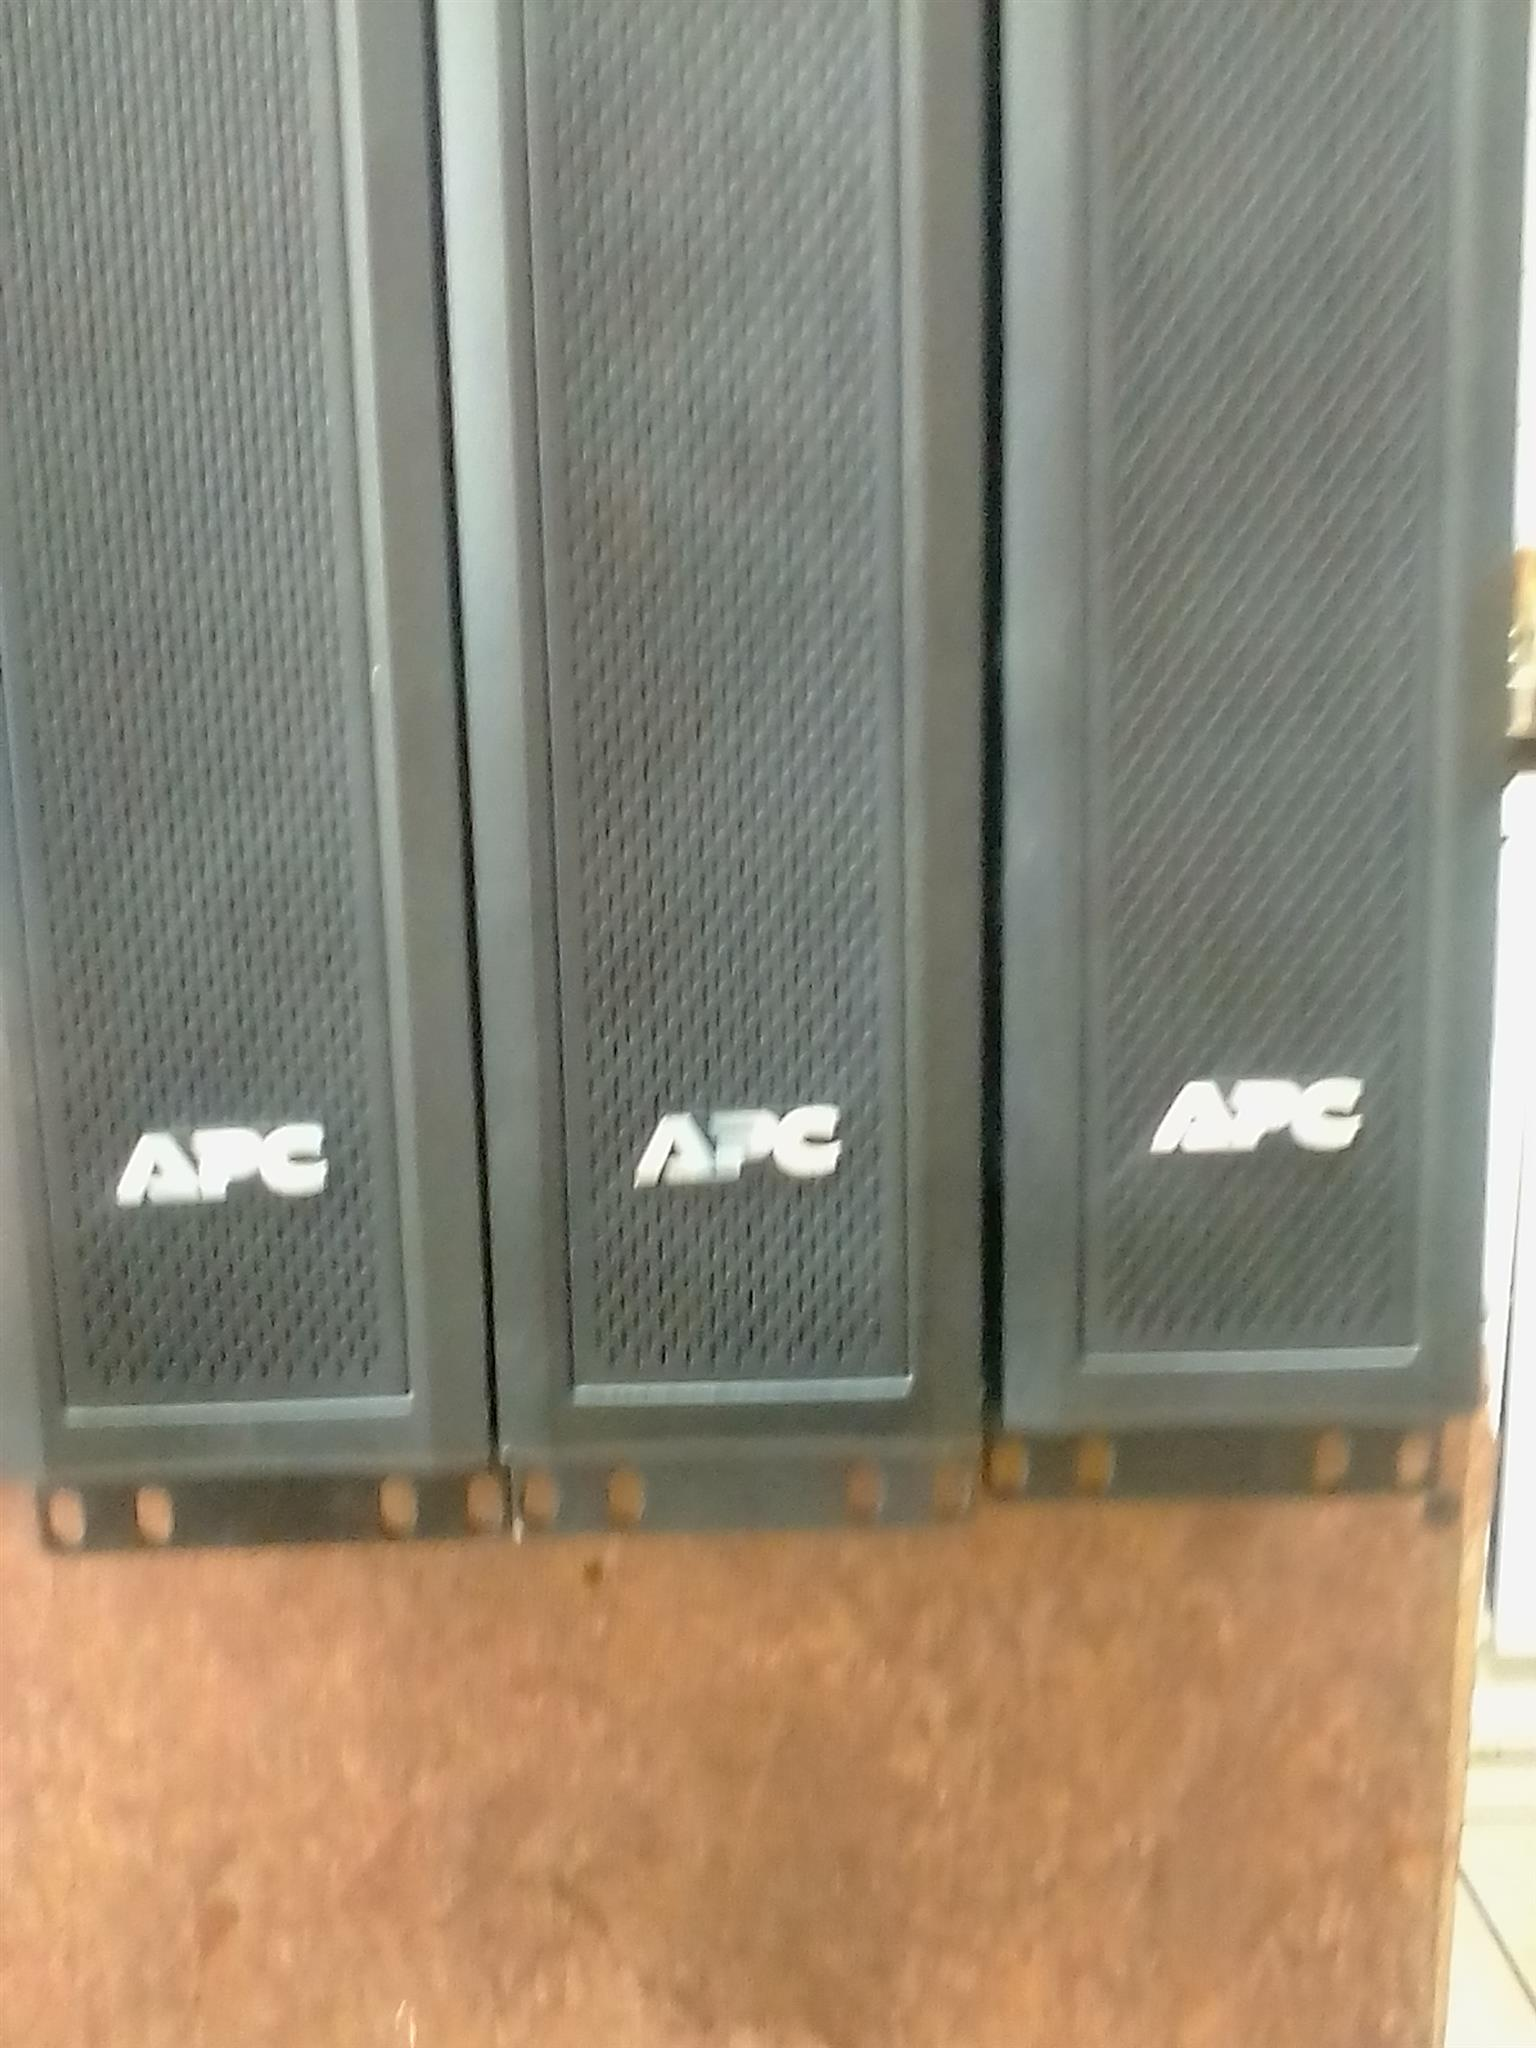 APC  Ups back up power for server or pc model SMX 1000